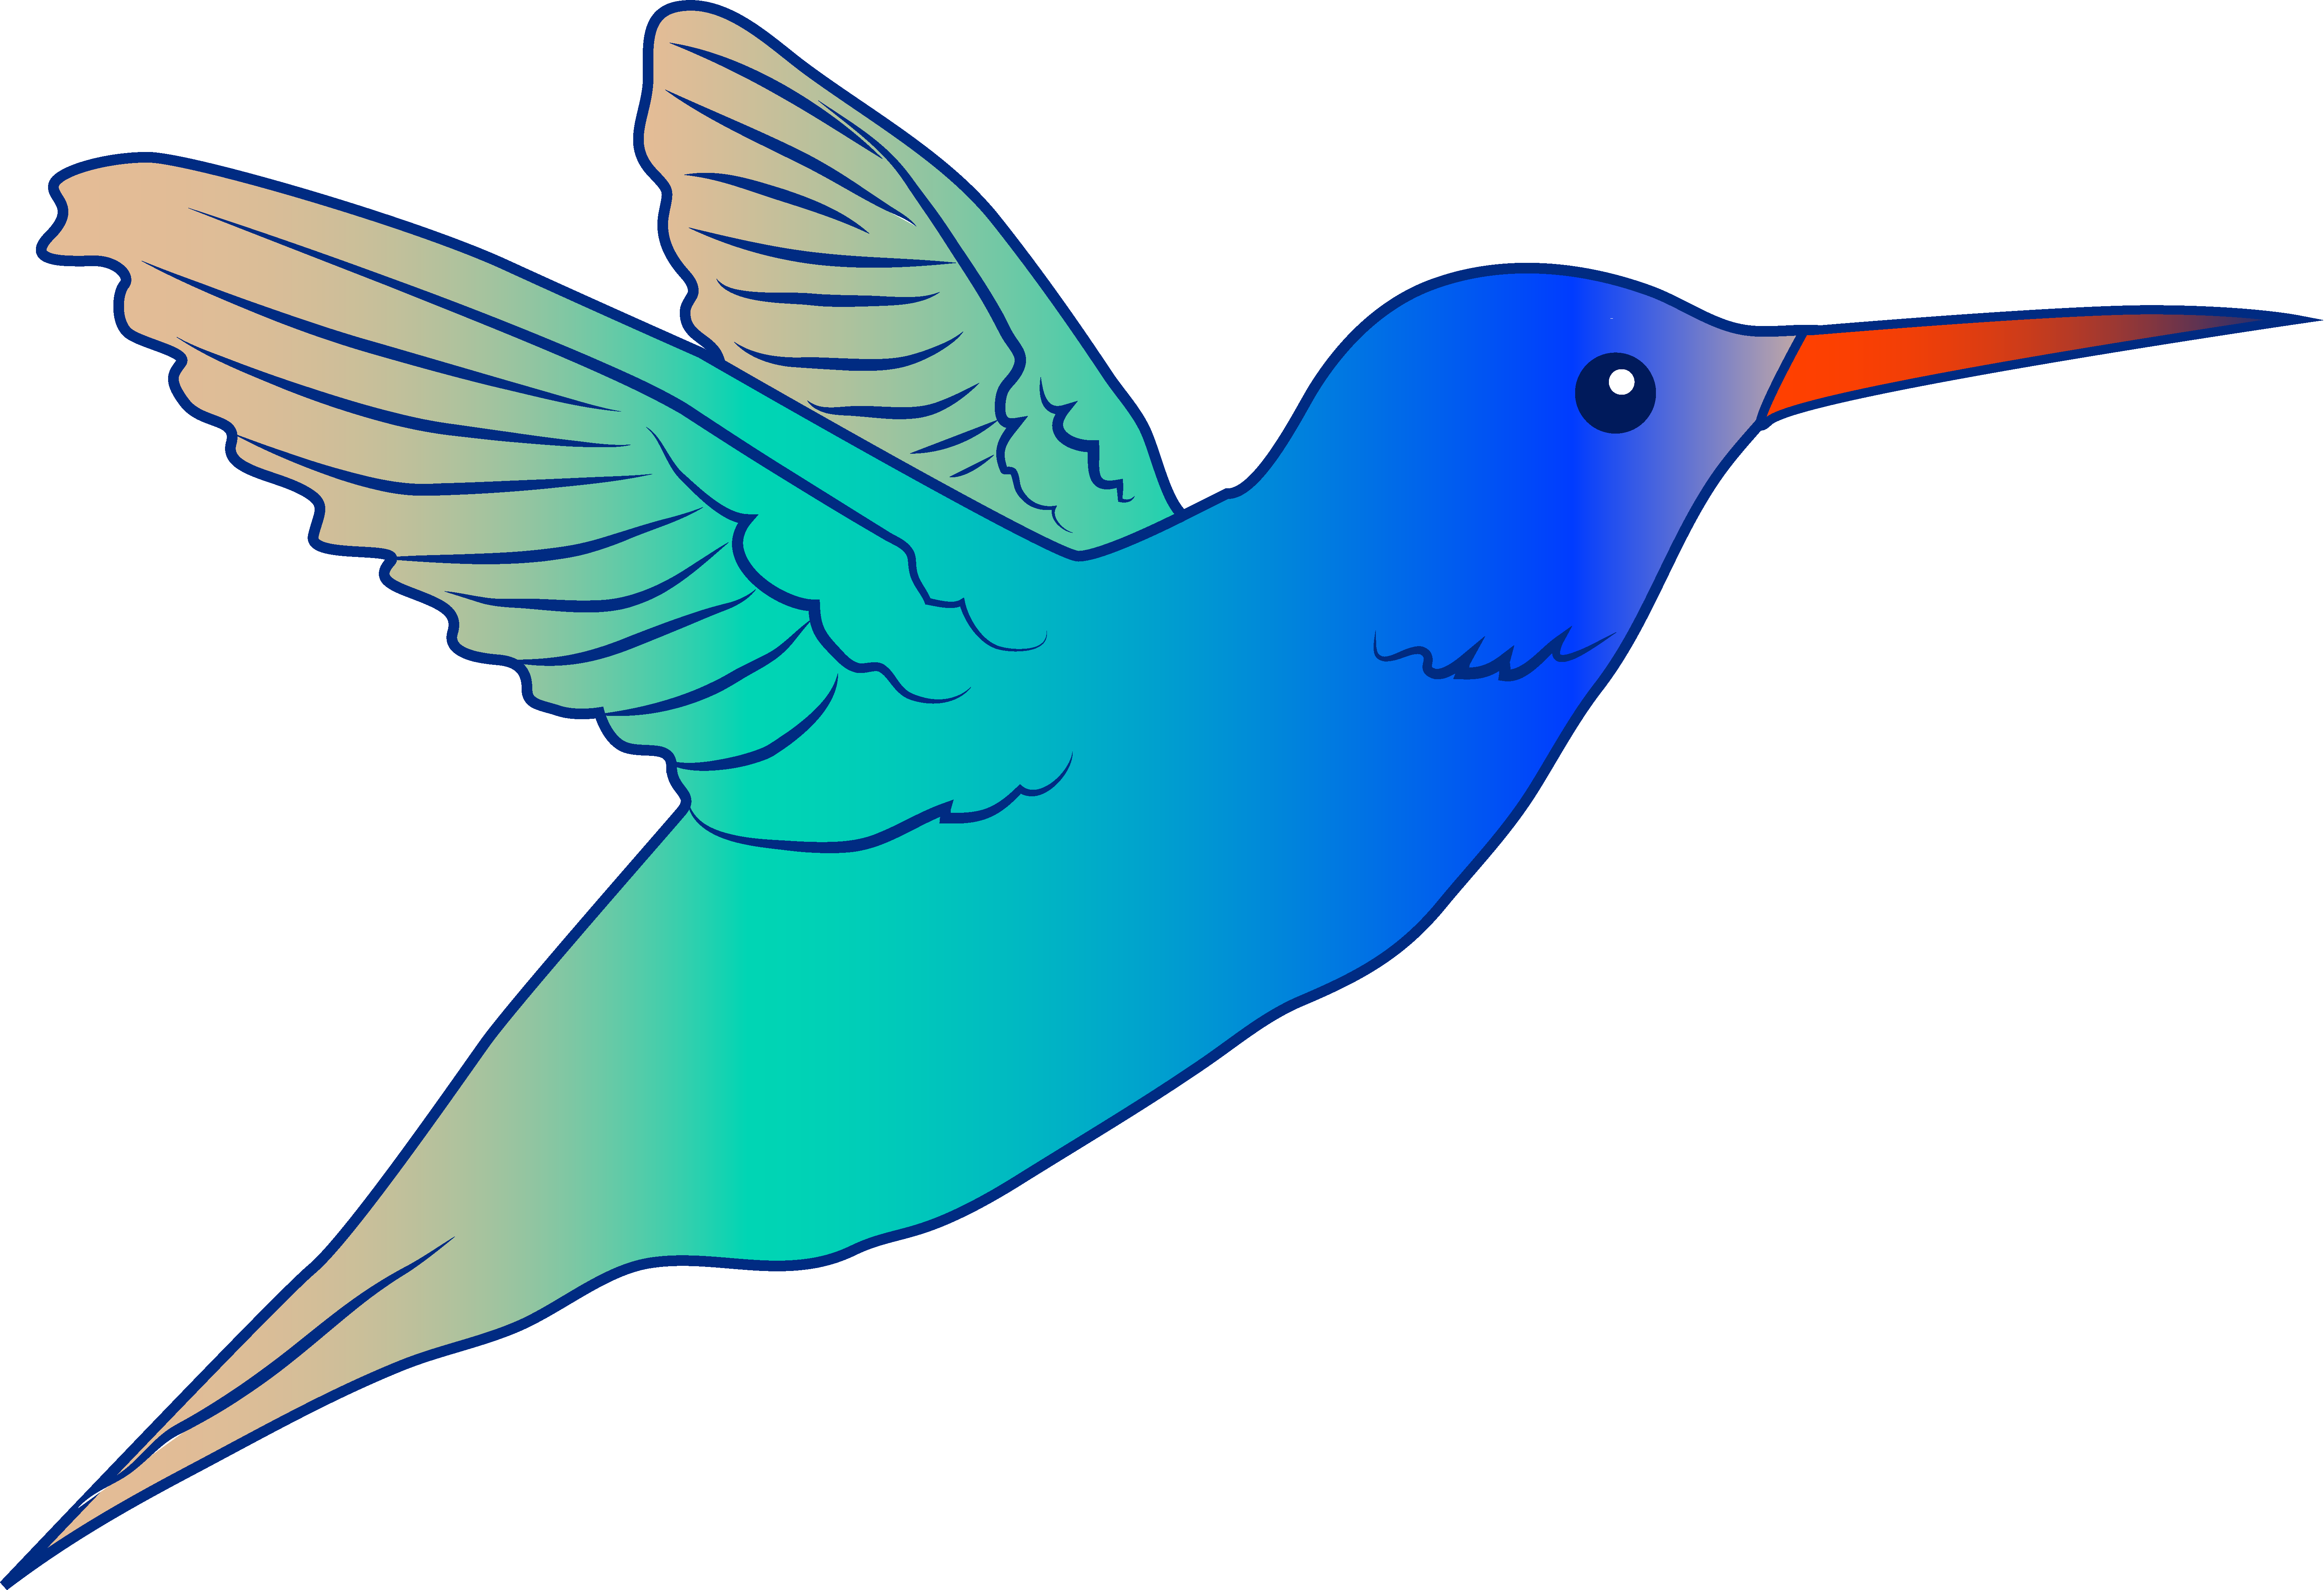 Clipart Bird | Clipart library - Free Clipart Images